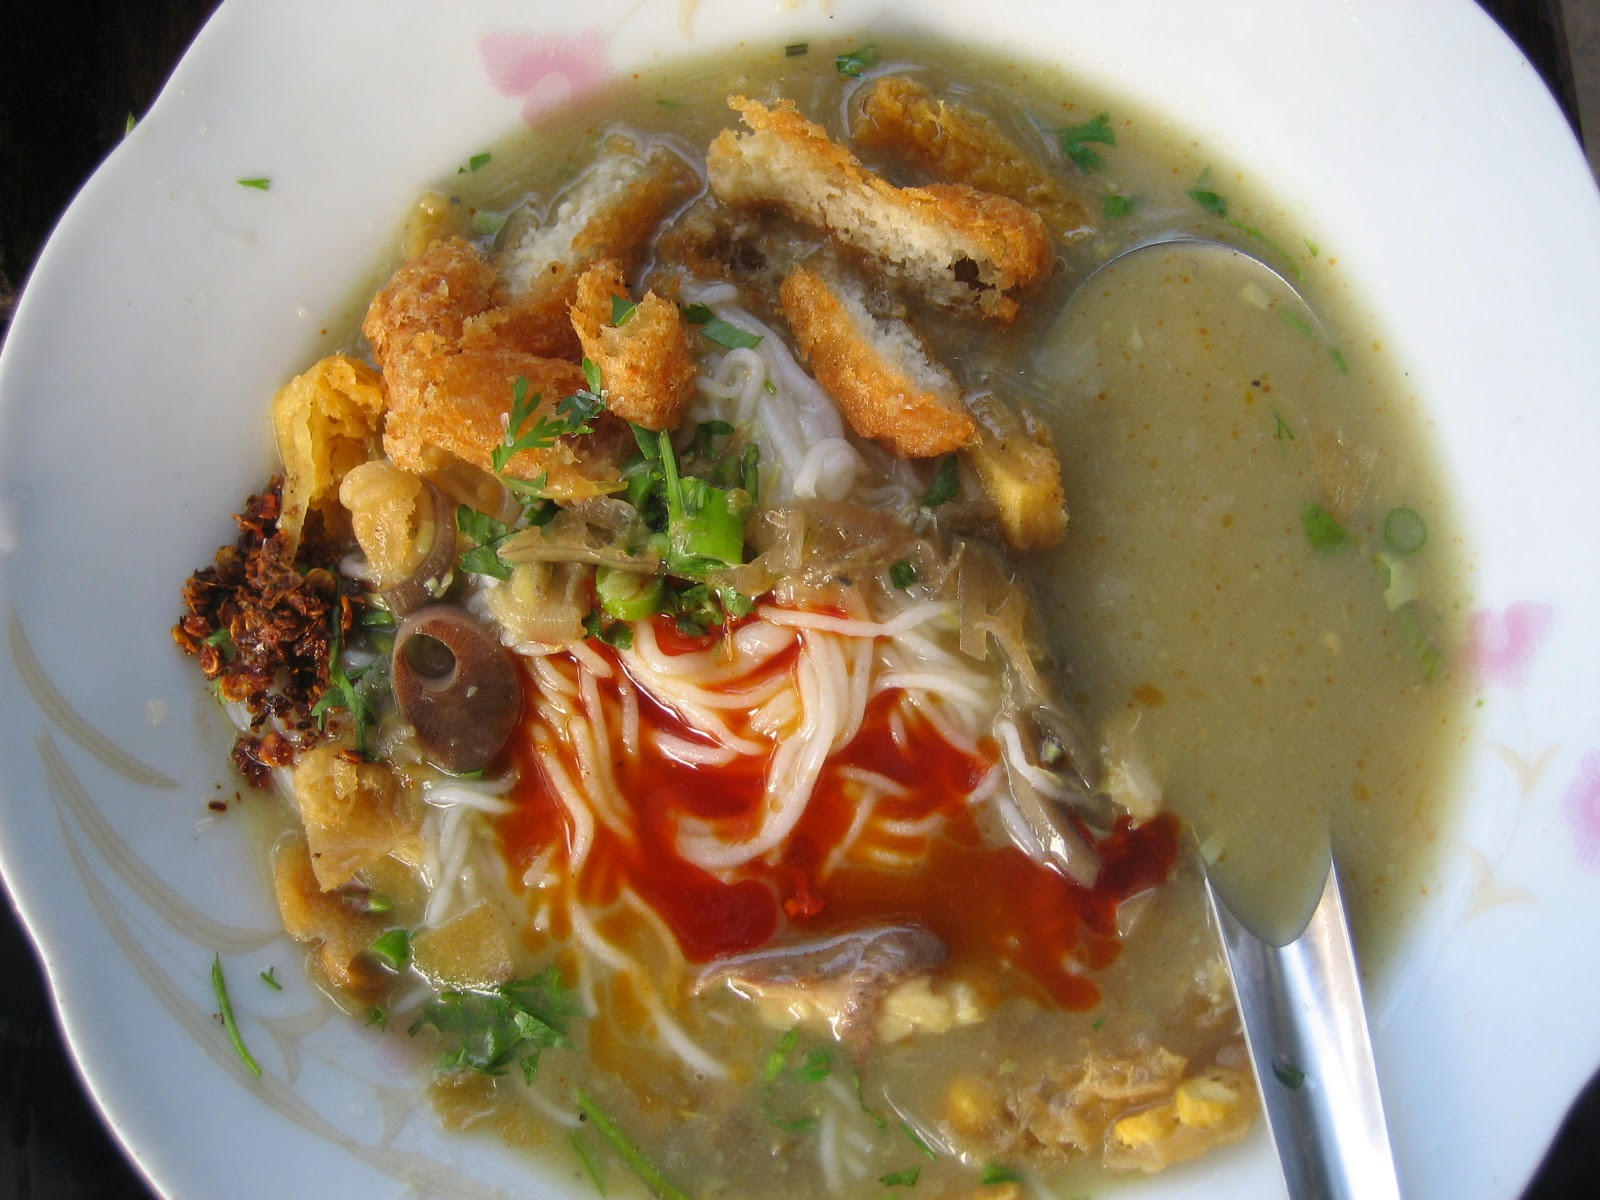 http://www.theguardian.com/lifeandstyle/2015/mar/07/aung-san-suu-kyi-fish-soup-breakfast-champions